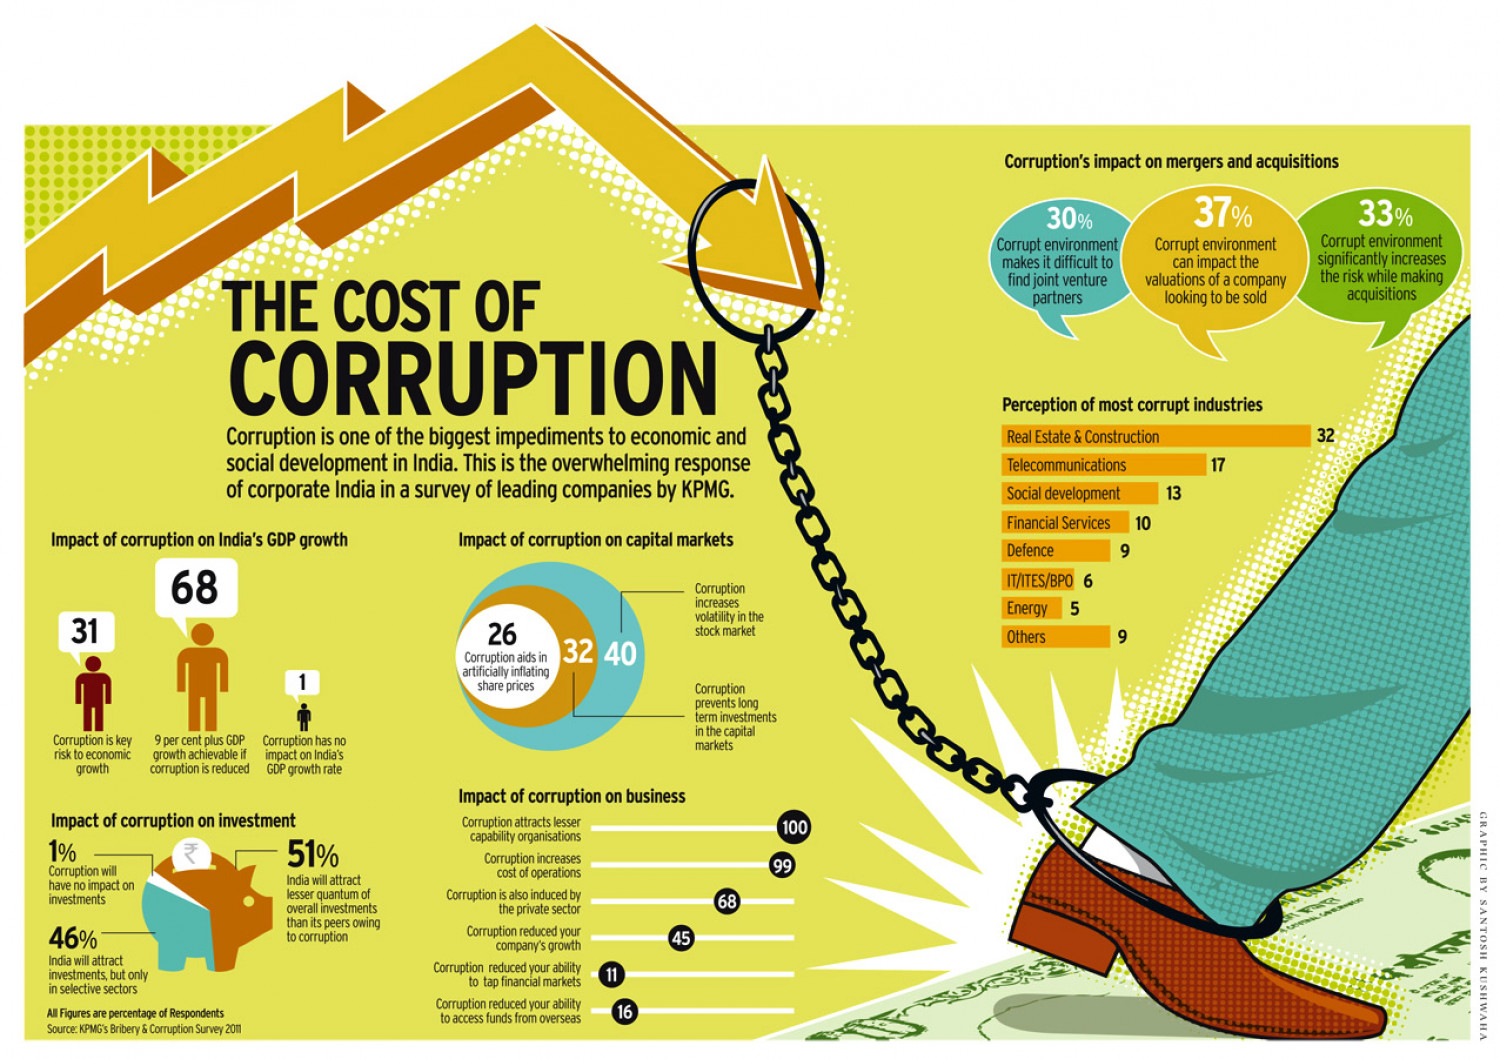 THE COST OF CORRUPTION Infographic